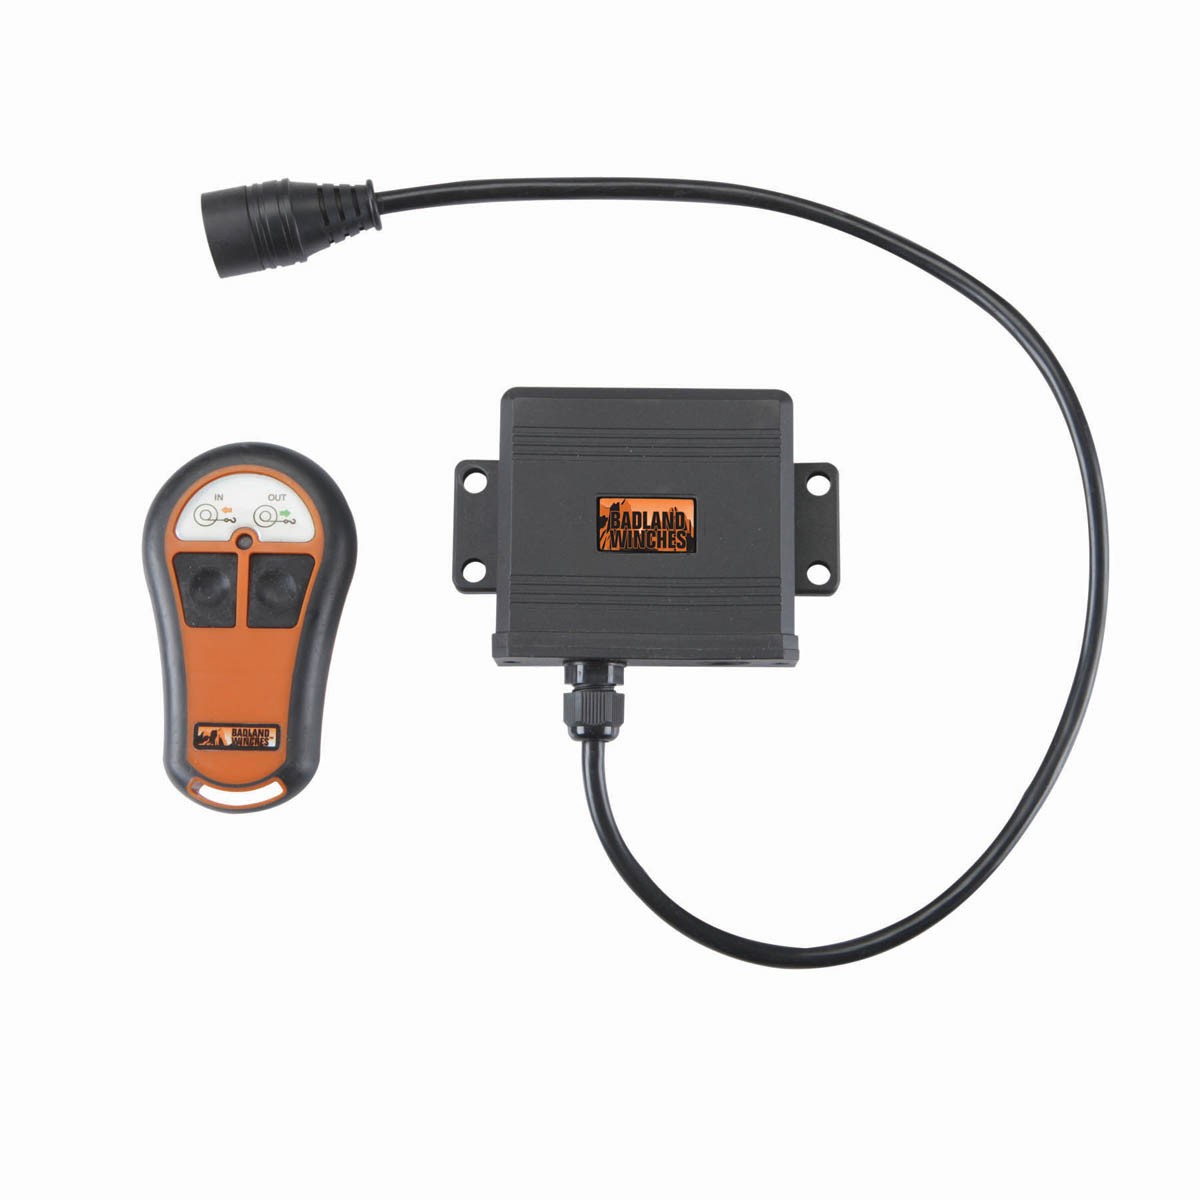 hight resolution of get your free badland 2500 winch wireless remote wiring diagram badland winches wireless remote diagram an